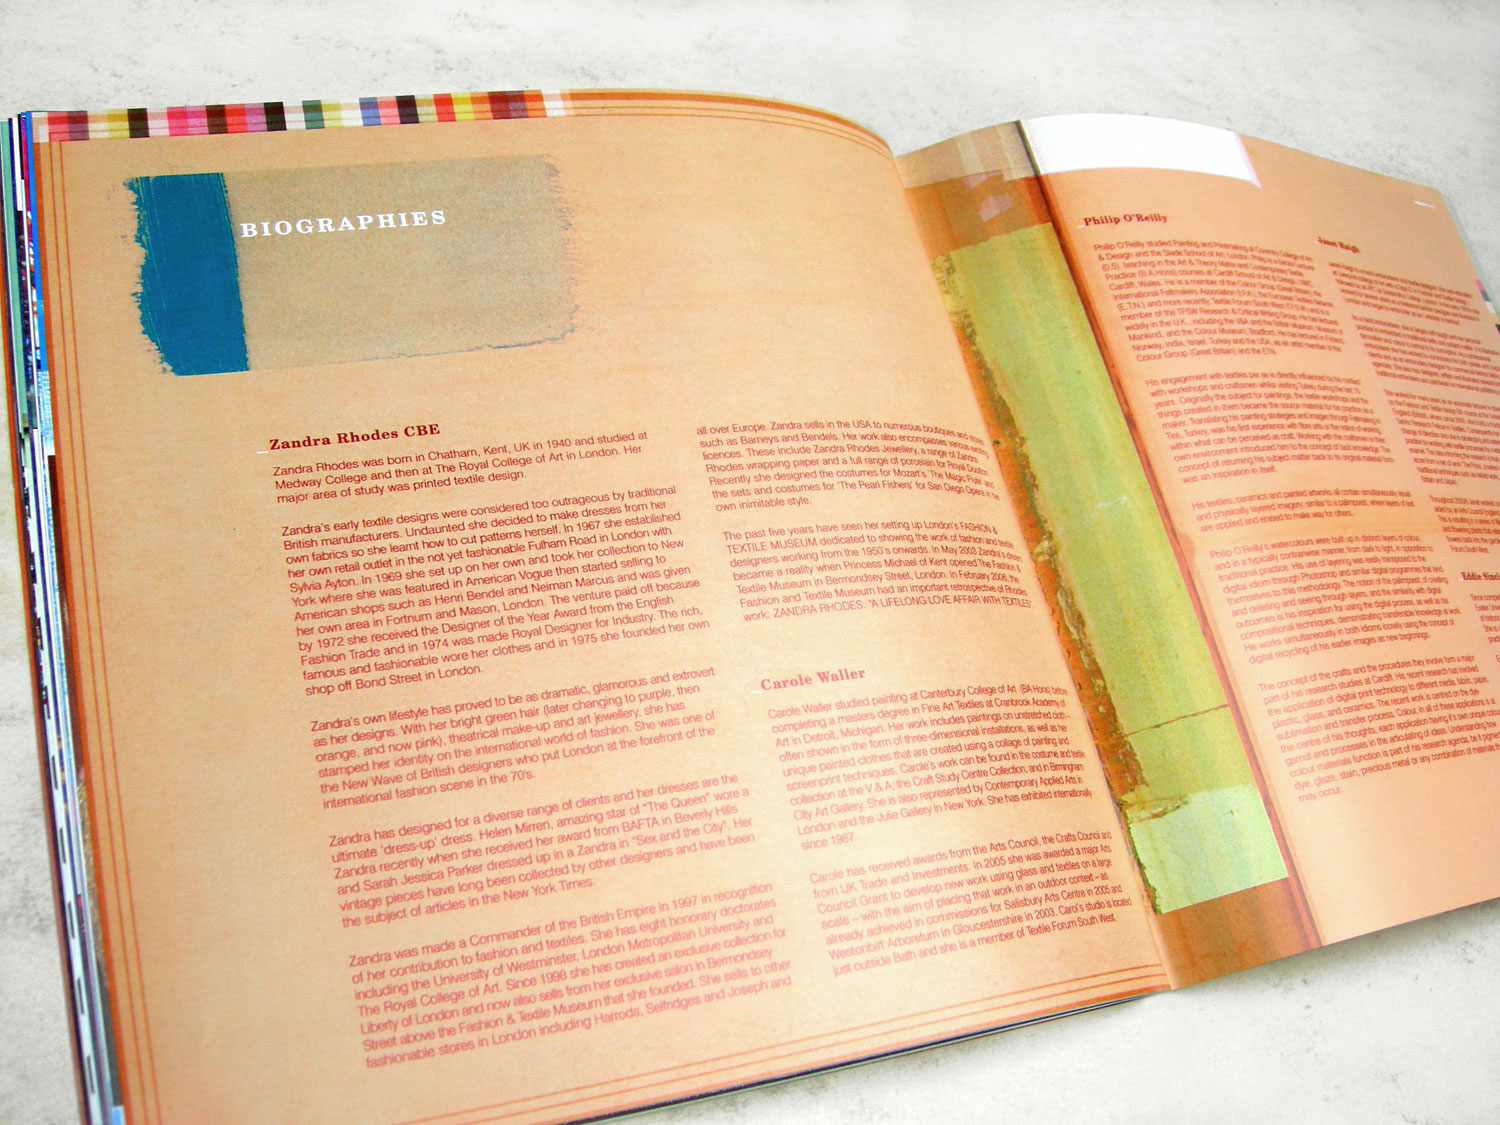 'ColourStory' Biographies Spread